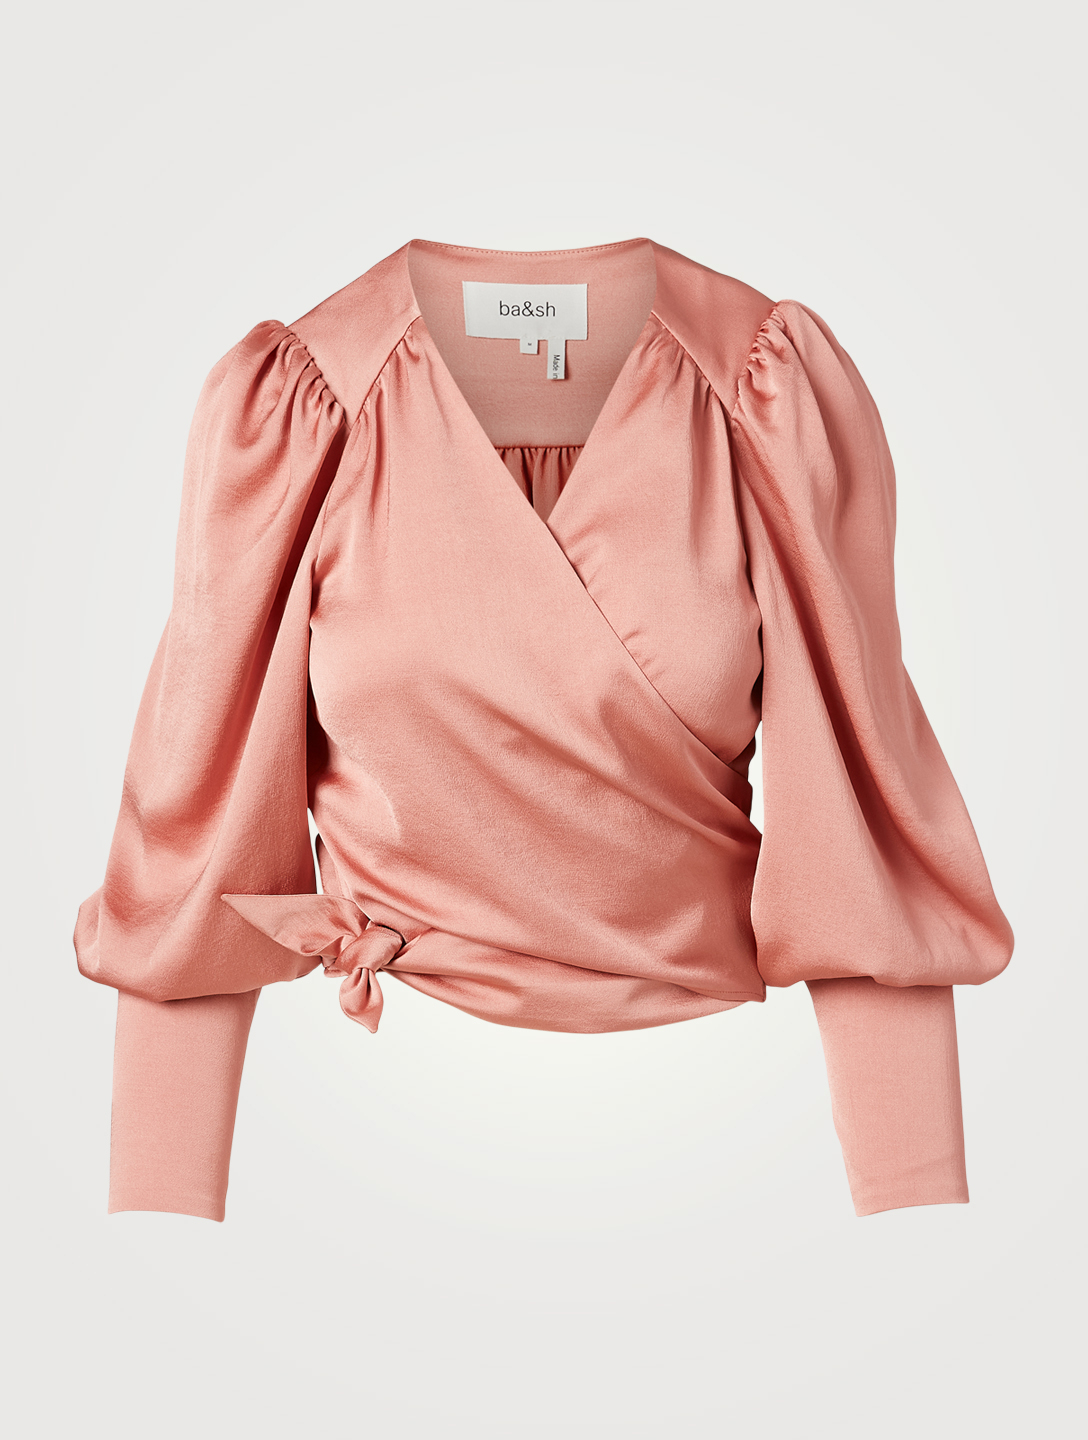 BA&SH Boum Cropped Wrap Top Women's Pink